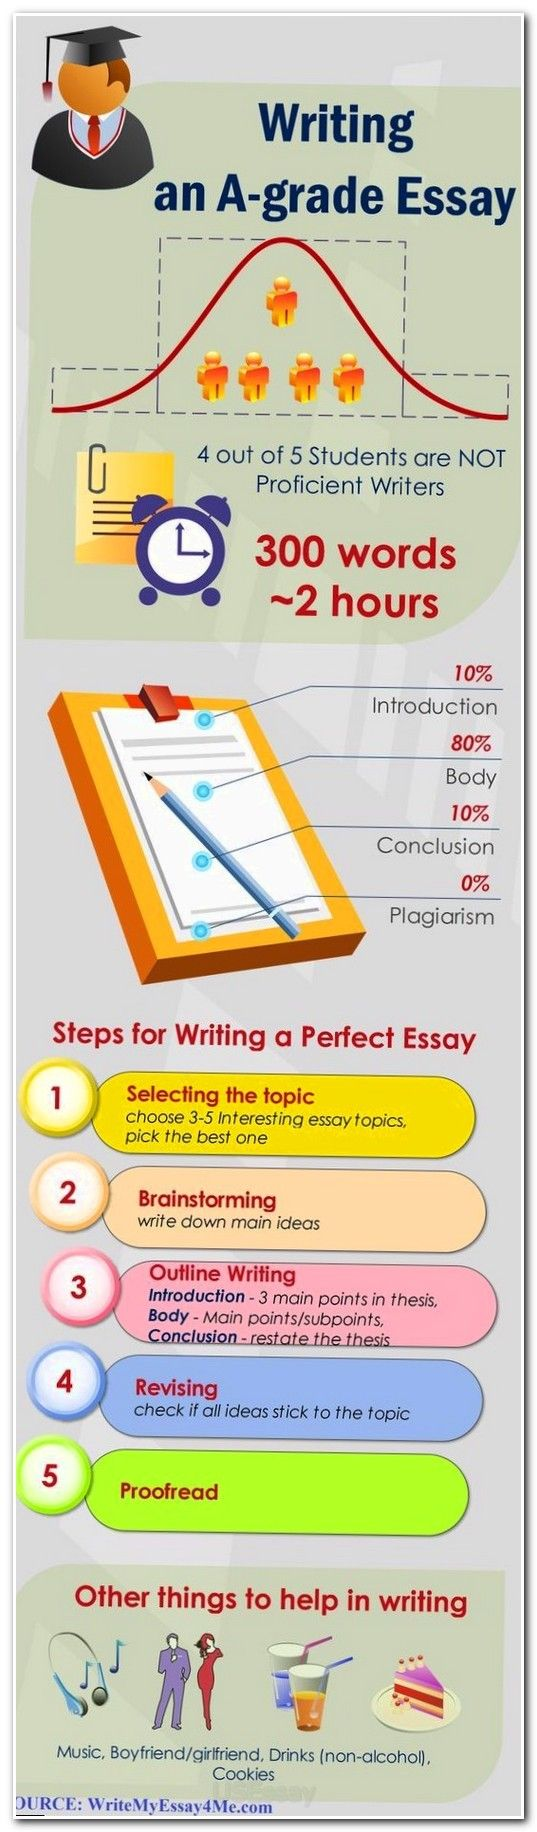 #essay #wrightessay essay writing service in australia, website assignment, short written stories, paragraph school, essay on teenage, hamlet character analysis, how to write a 5 paragraph compare and contrast essay, story writing for class 10 examples, free access journals academic journals, smoking cause and effect essay, cause and effect sentences, english creative writing ideas, short essay writing tips, essay of school life, essay music in my life